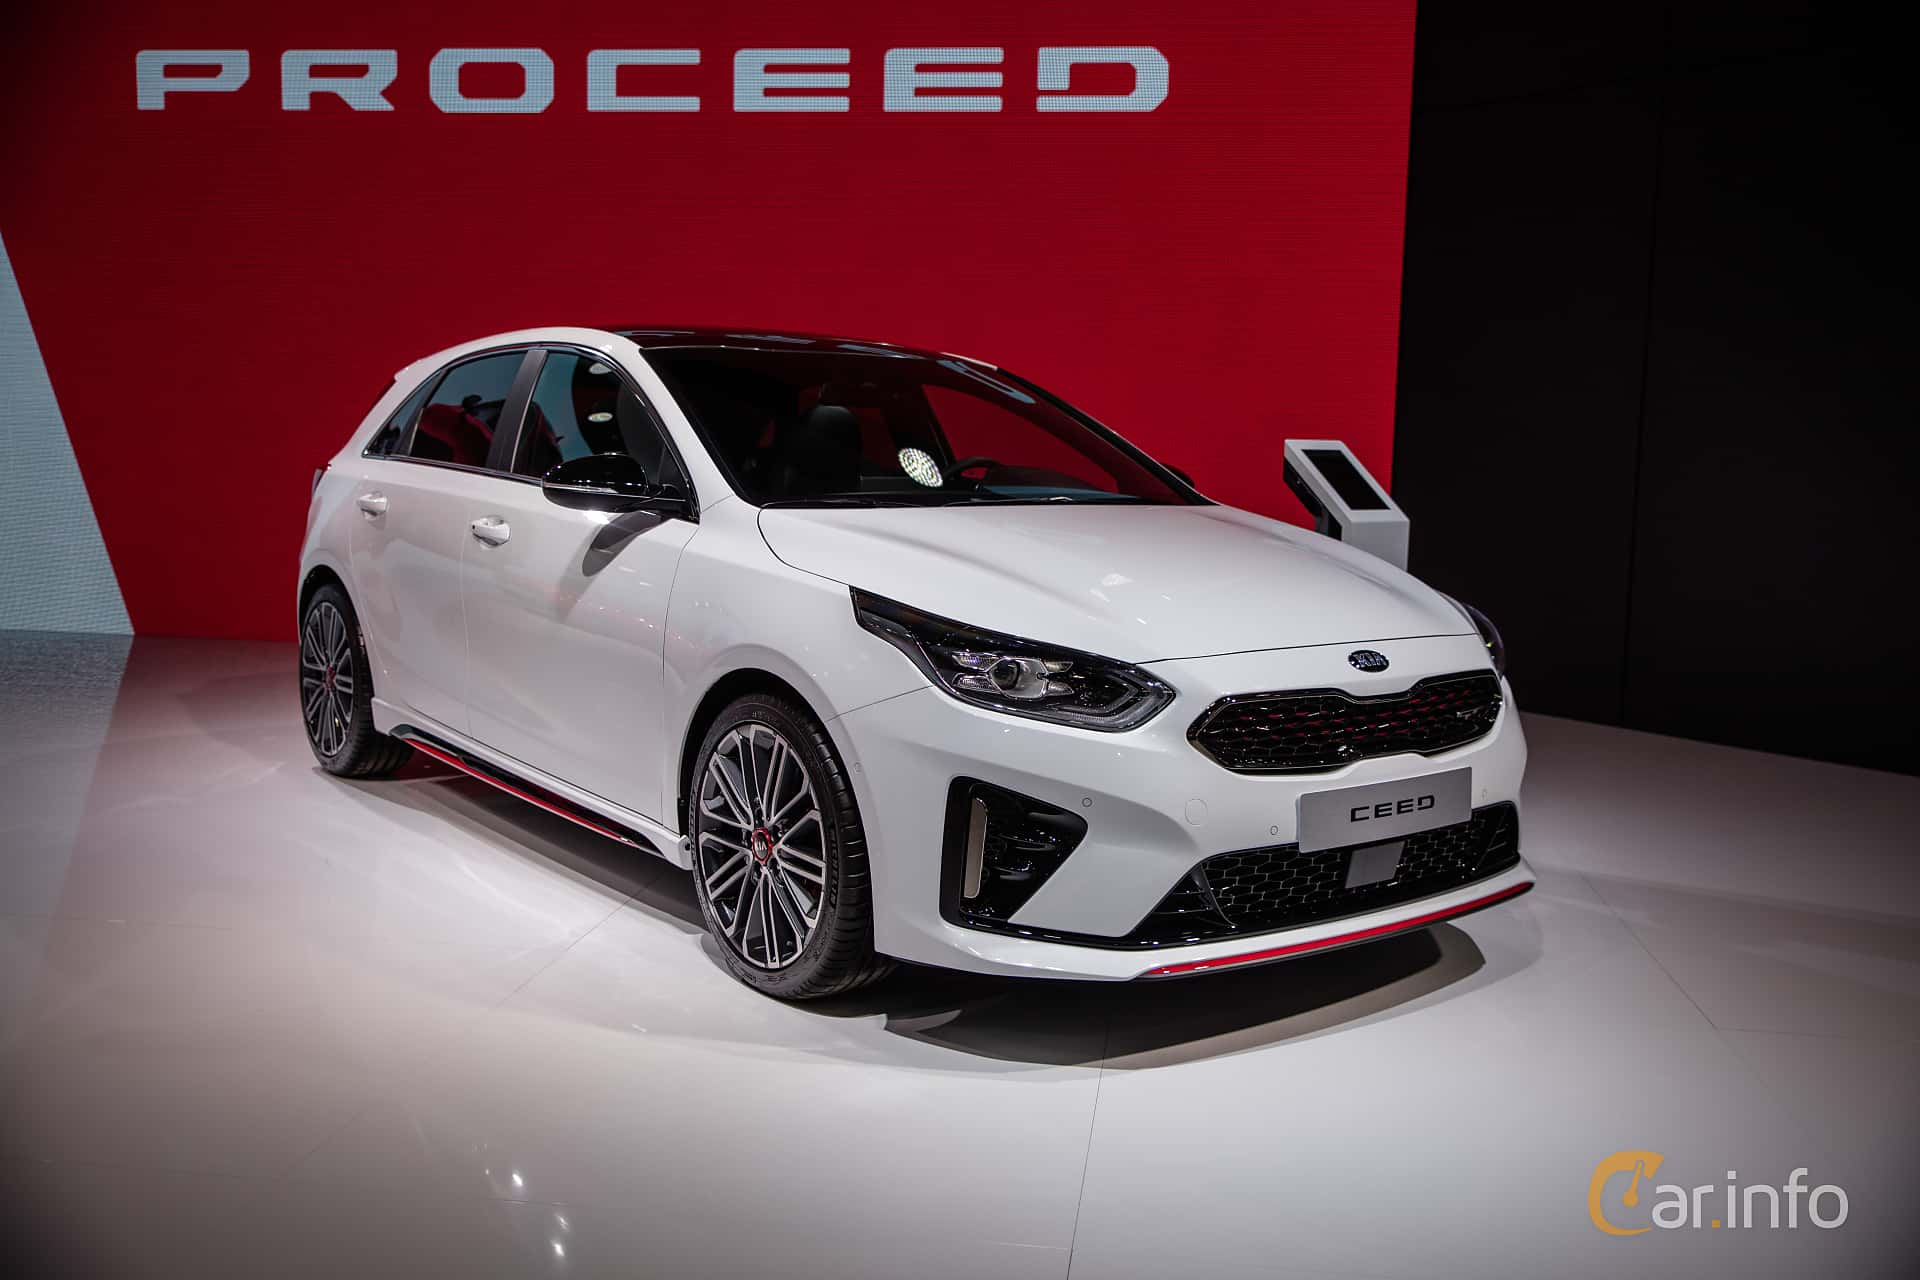 Front/Side  of Kia Ceed GT 1.6 T-GDI DCT, 204ps, 2019 at Paris Motor Show 2018